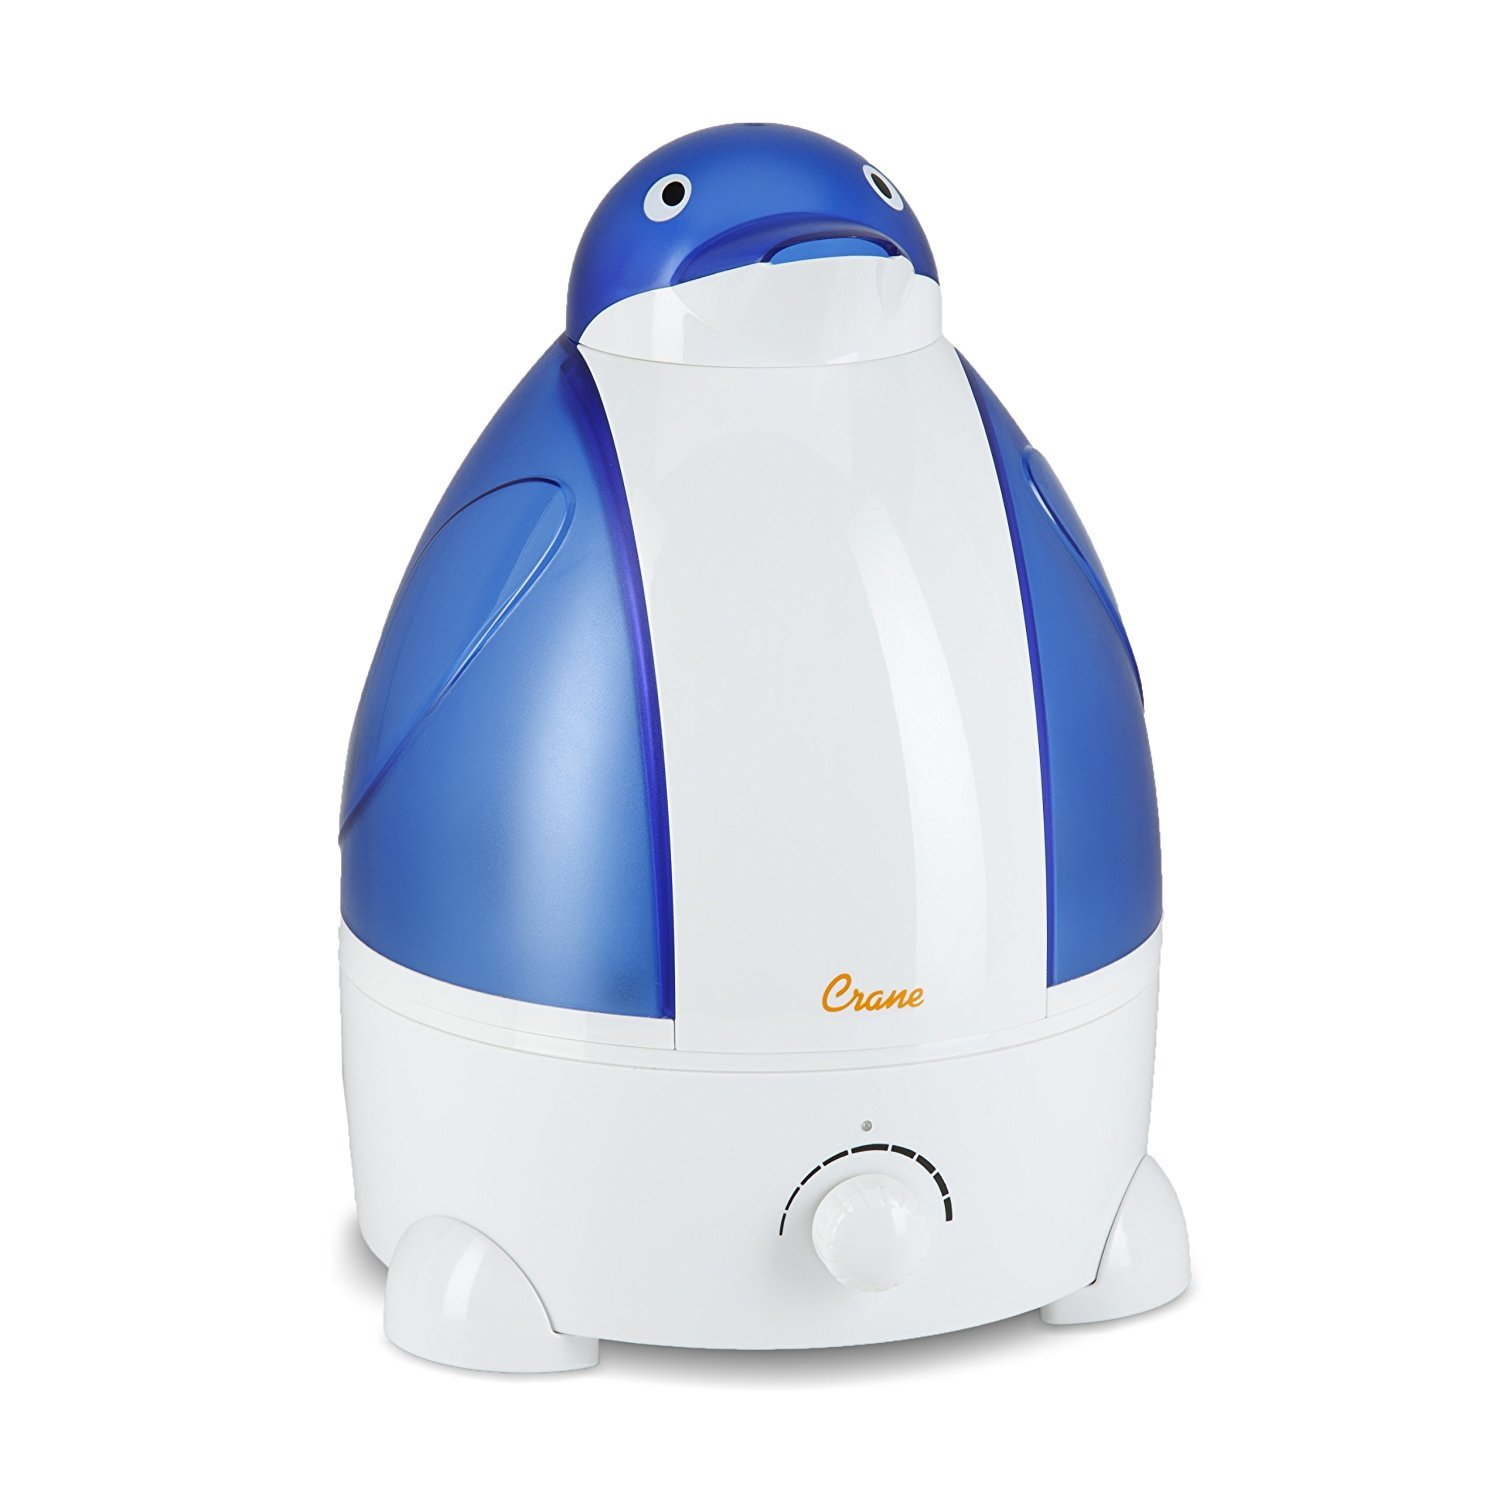 Crane USA Cool Mist Humidifiers for Kids, Penguin